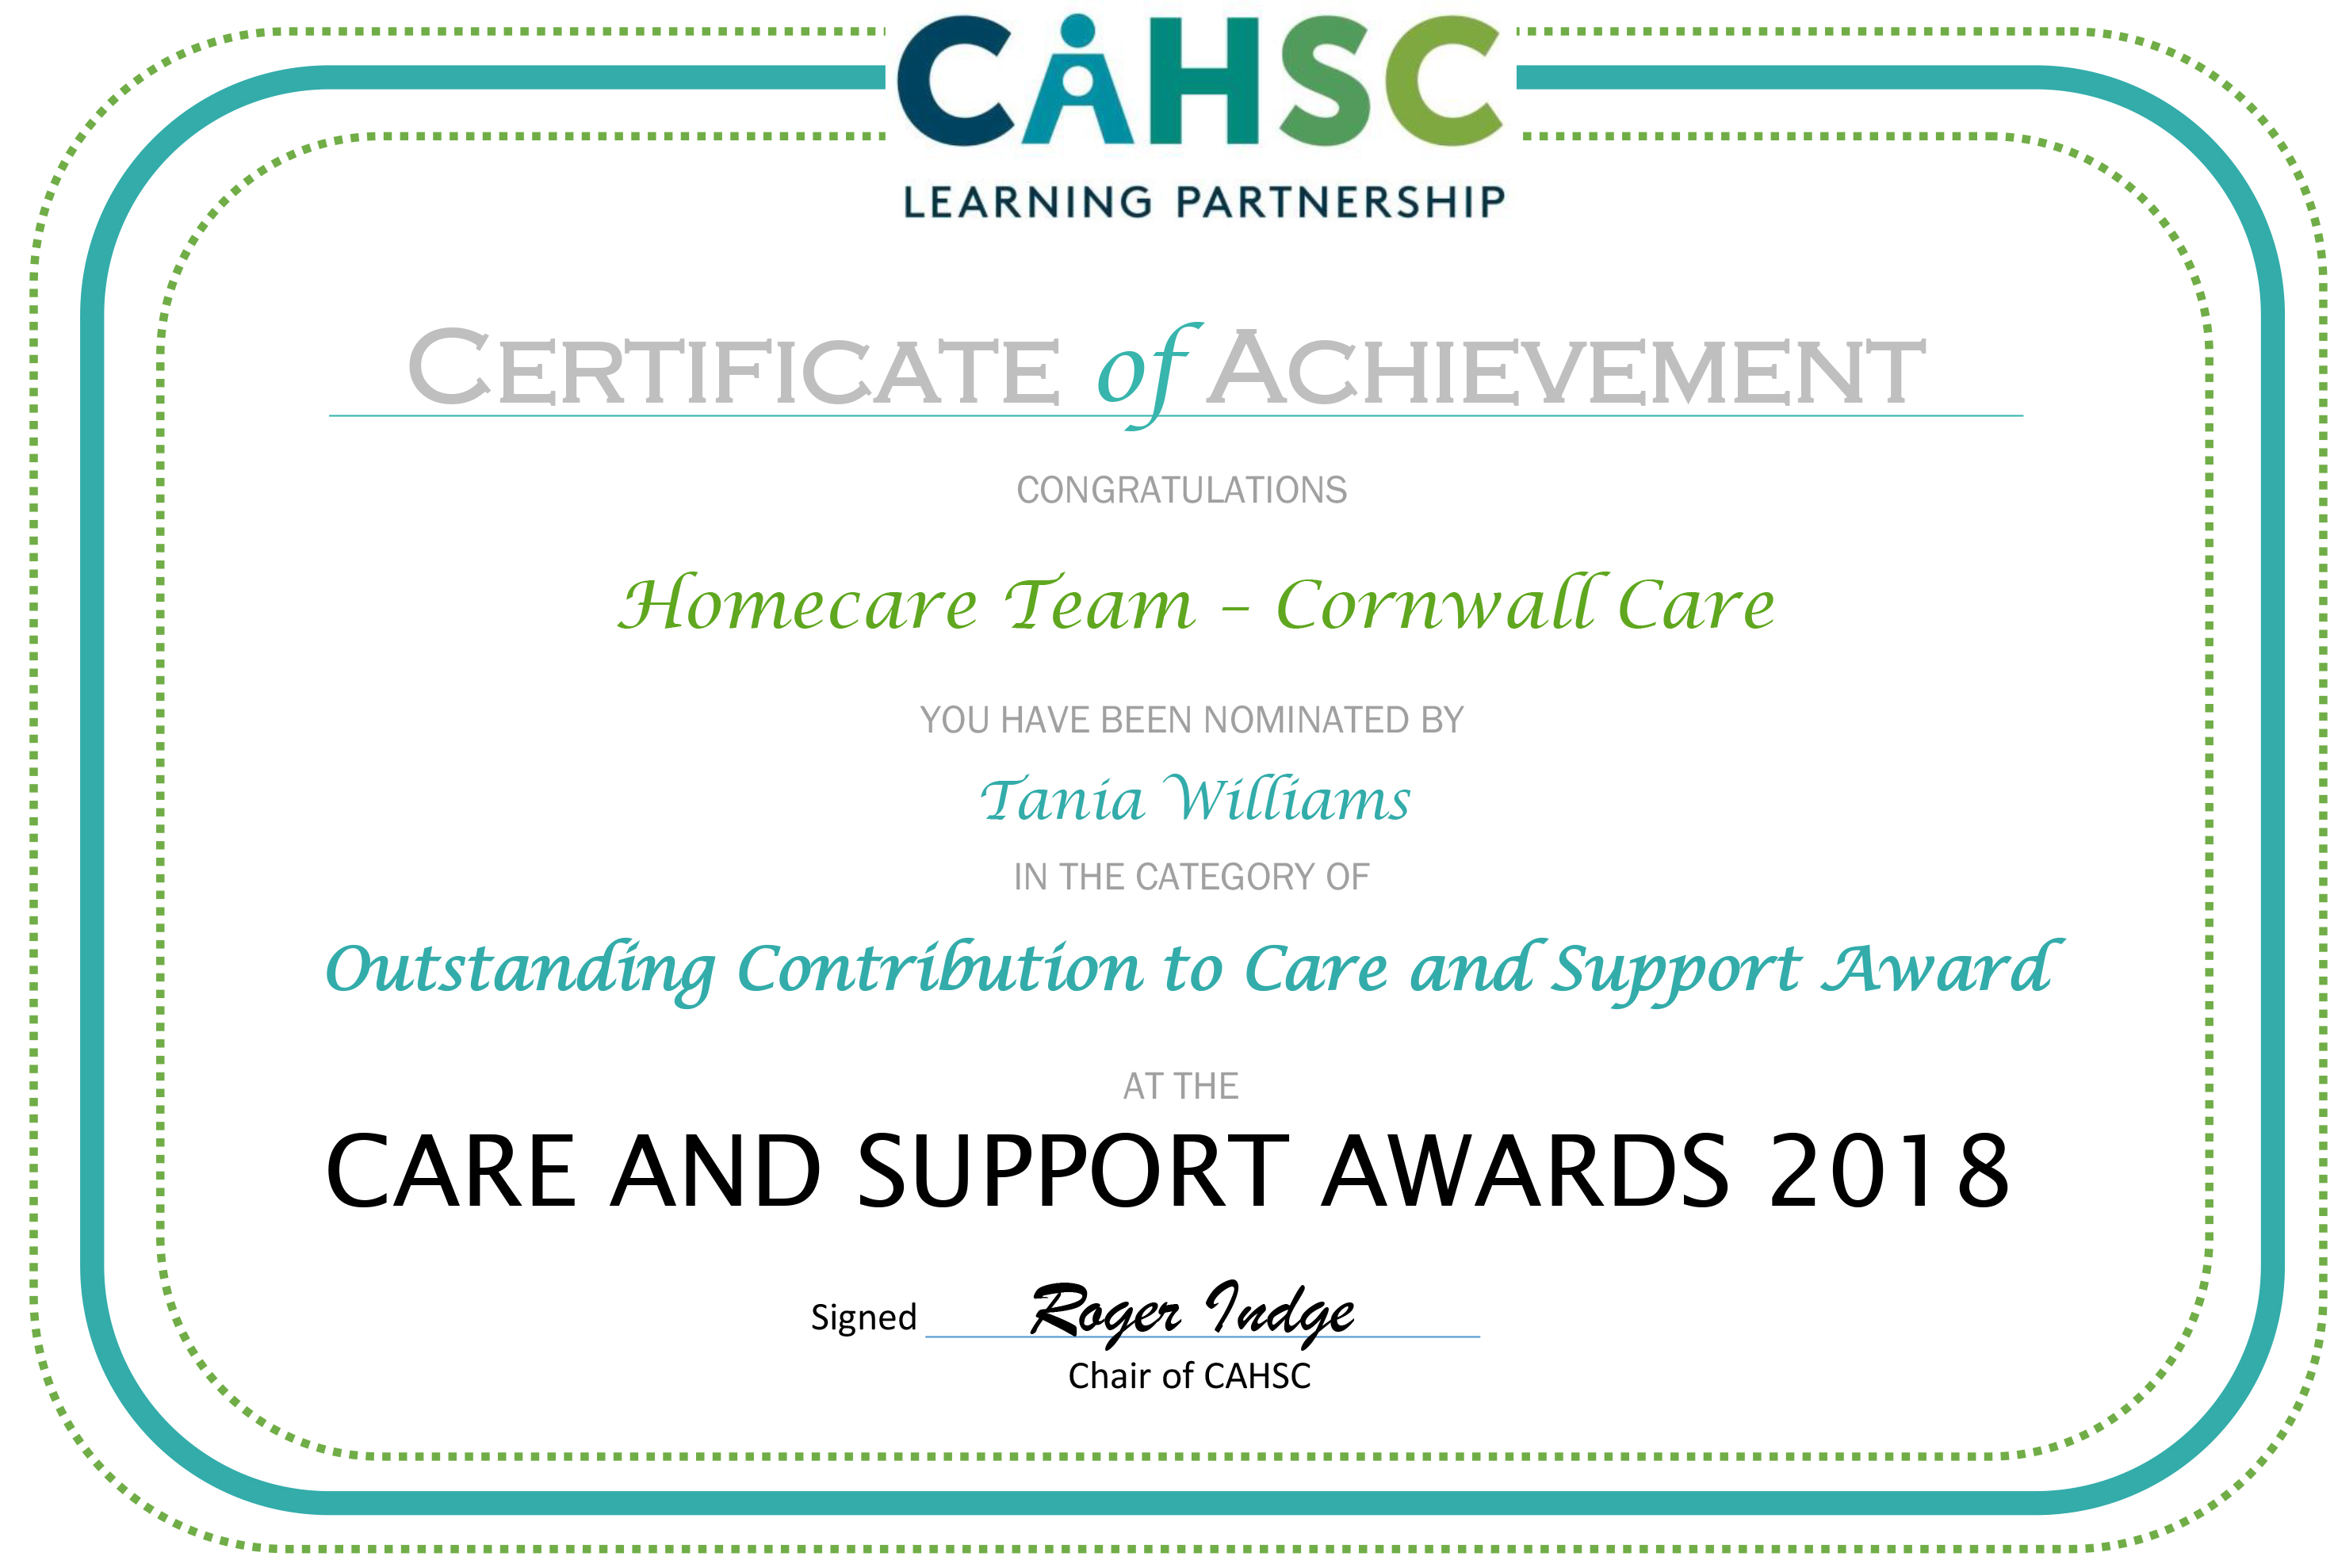 Care Awards Certificate - Homecare Team Cornwall Care.jpg